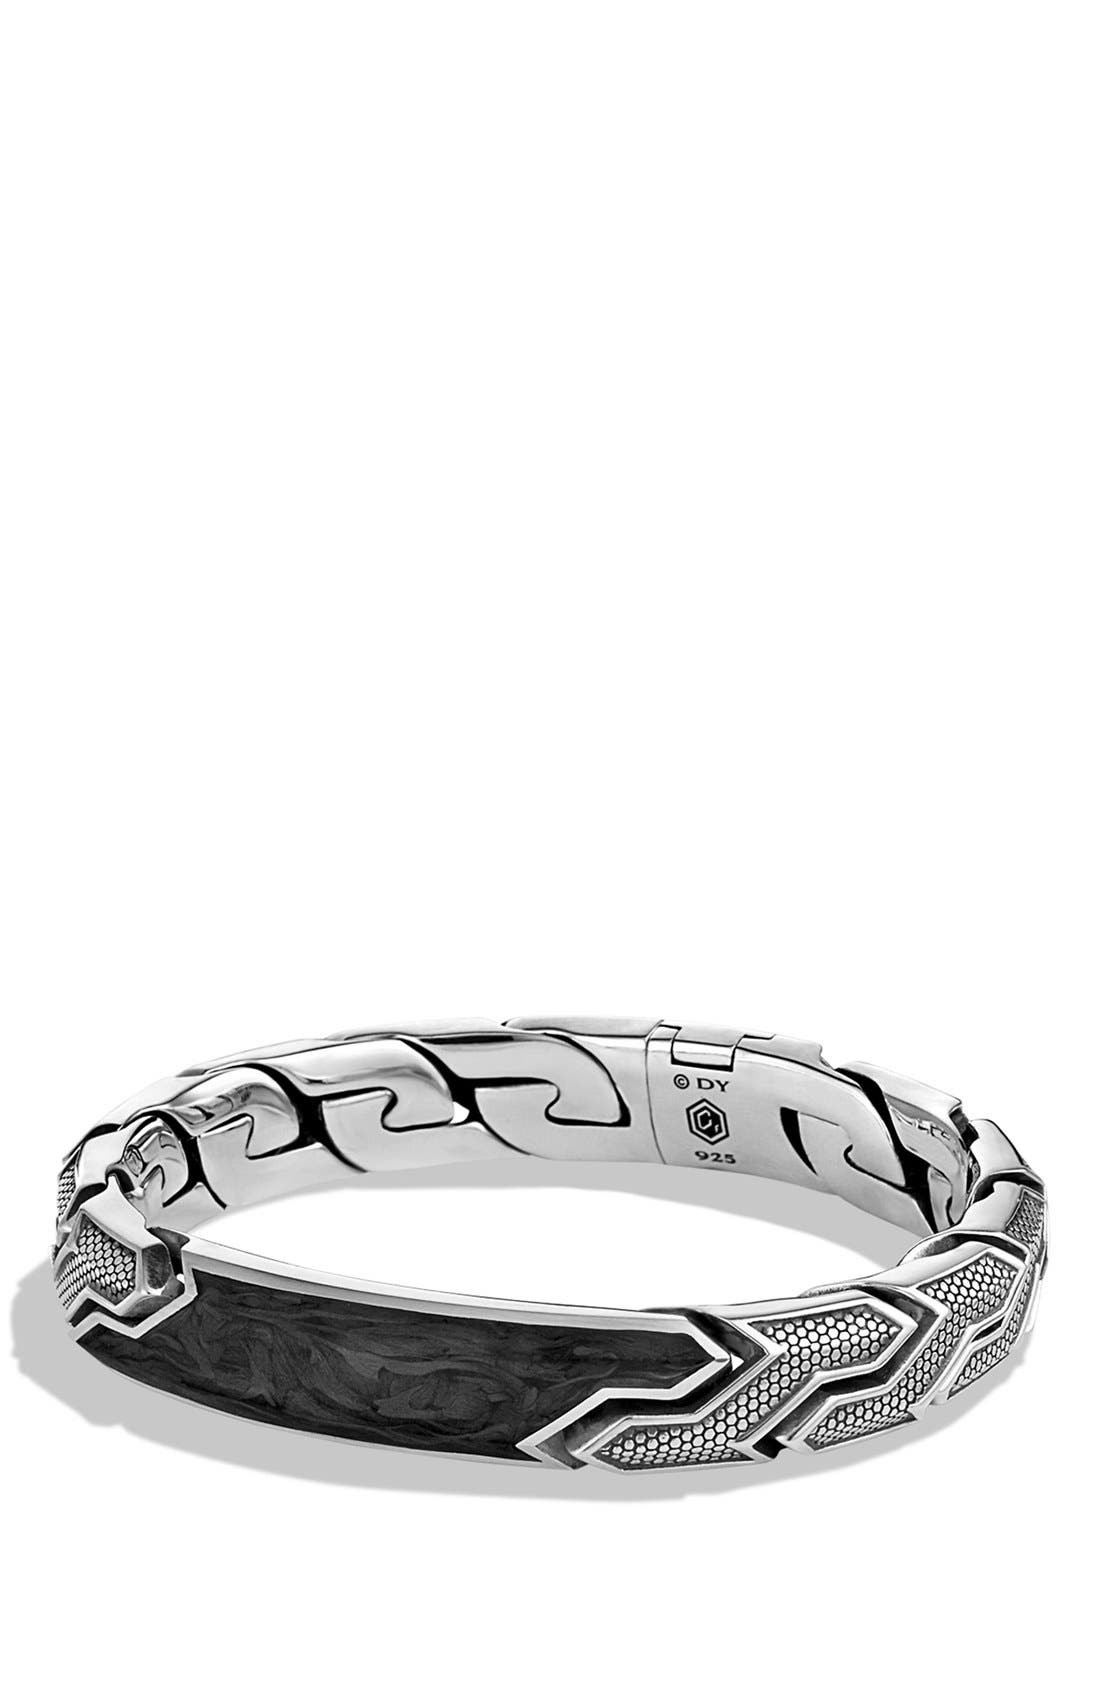 DAVID YURMAN Forged Carbon ID Bracelet, Main, color, FORGED CARBON